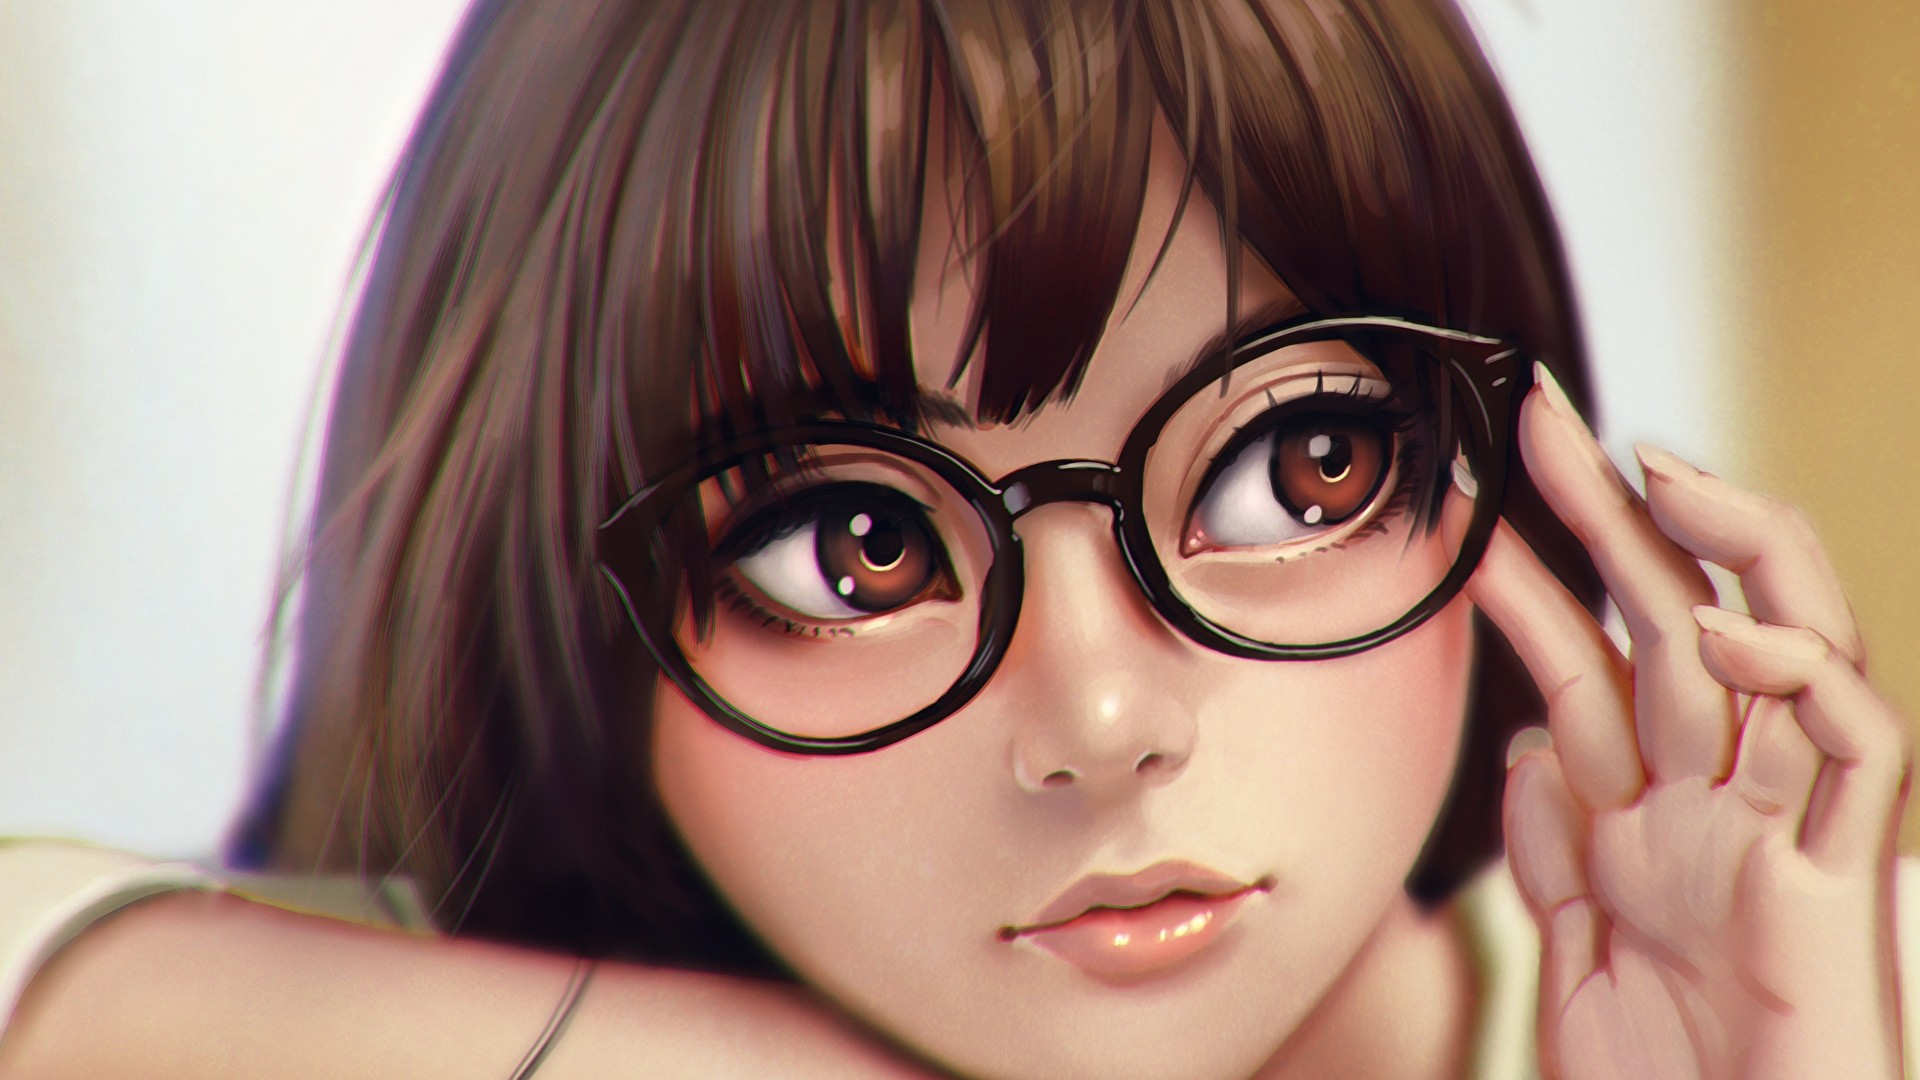 Anime Girl With Glasses Picture